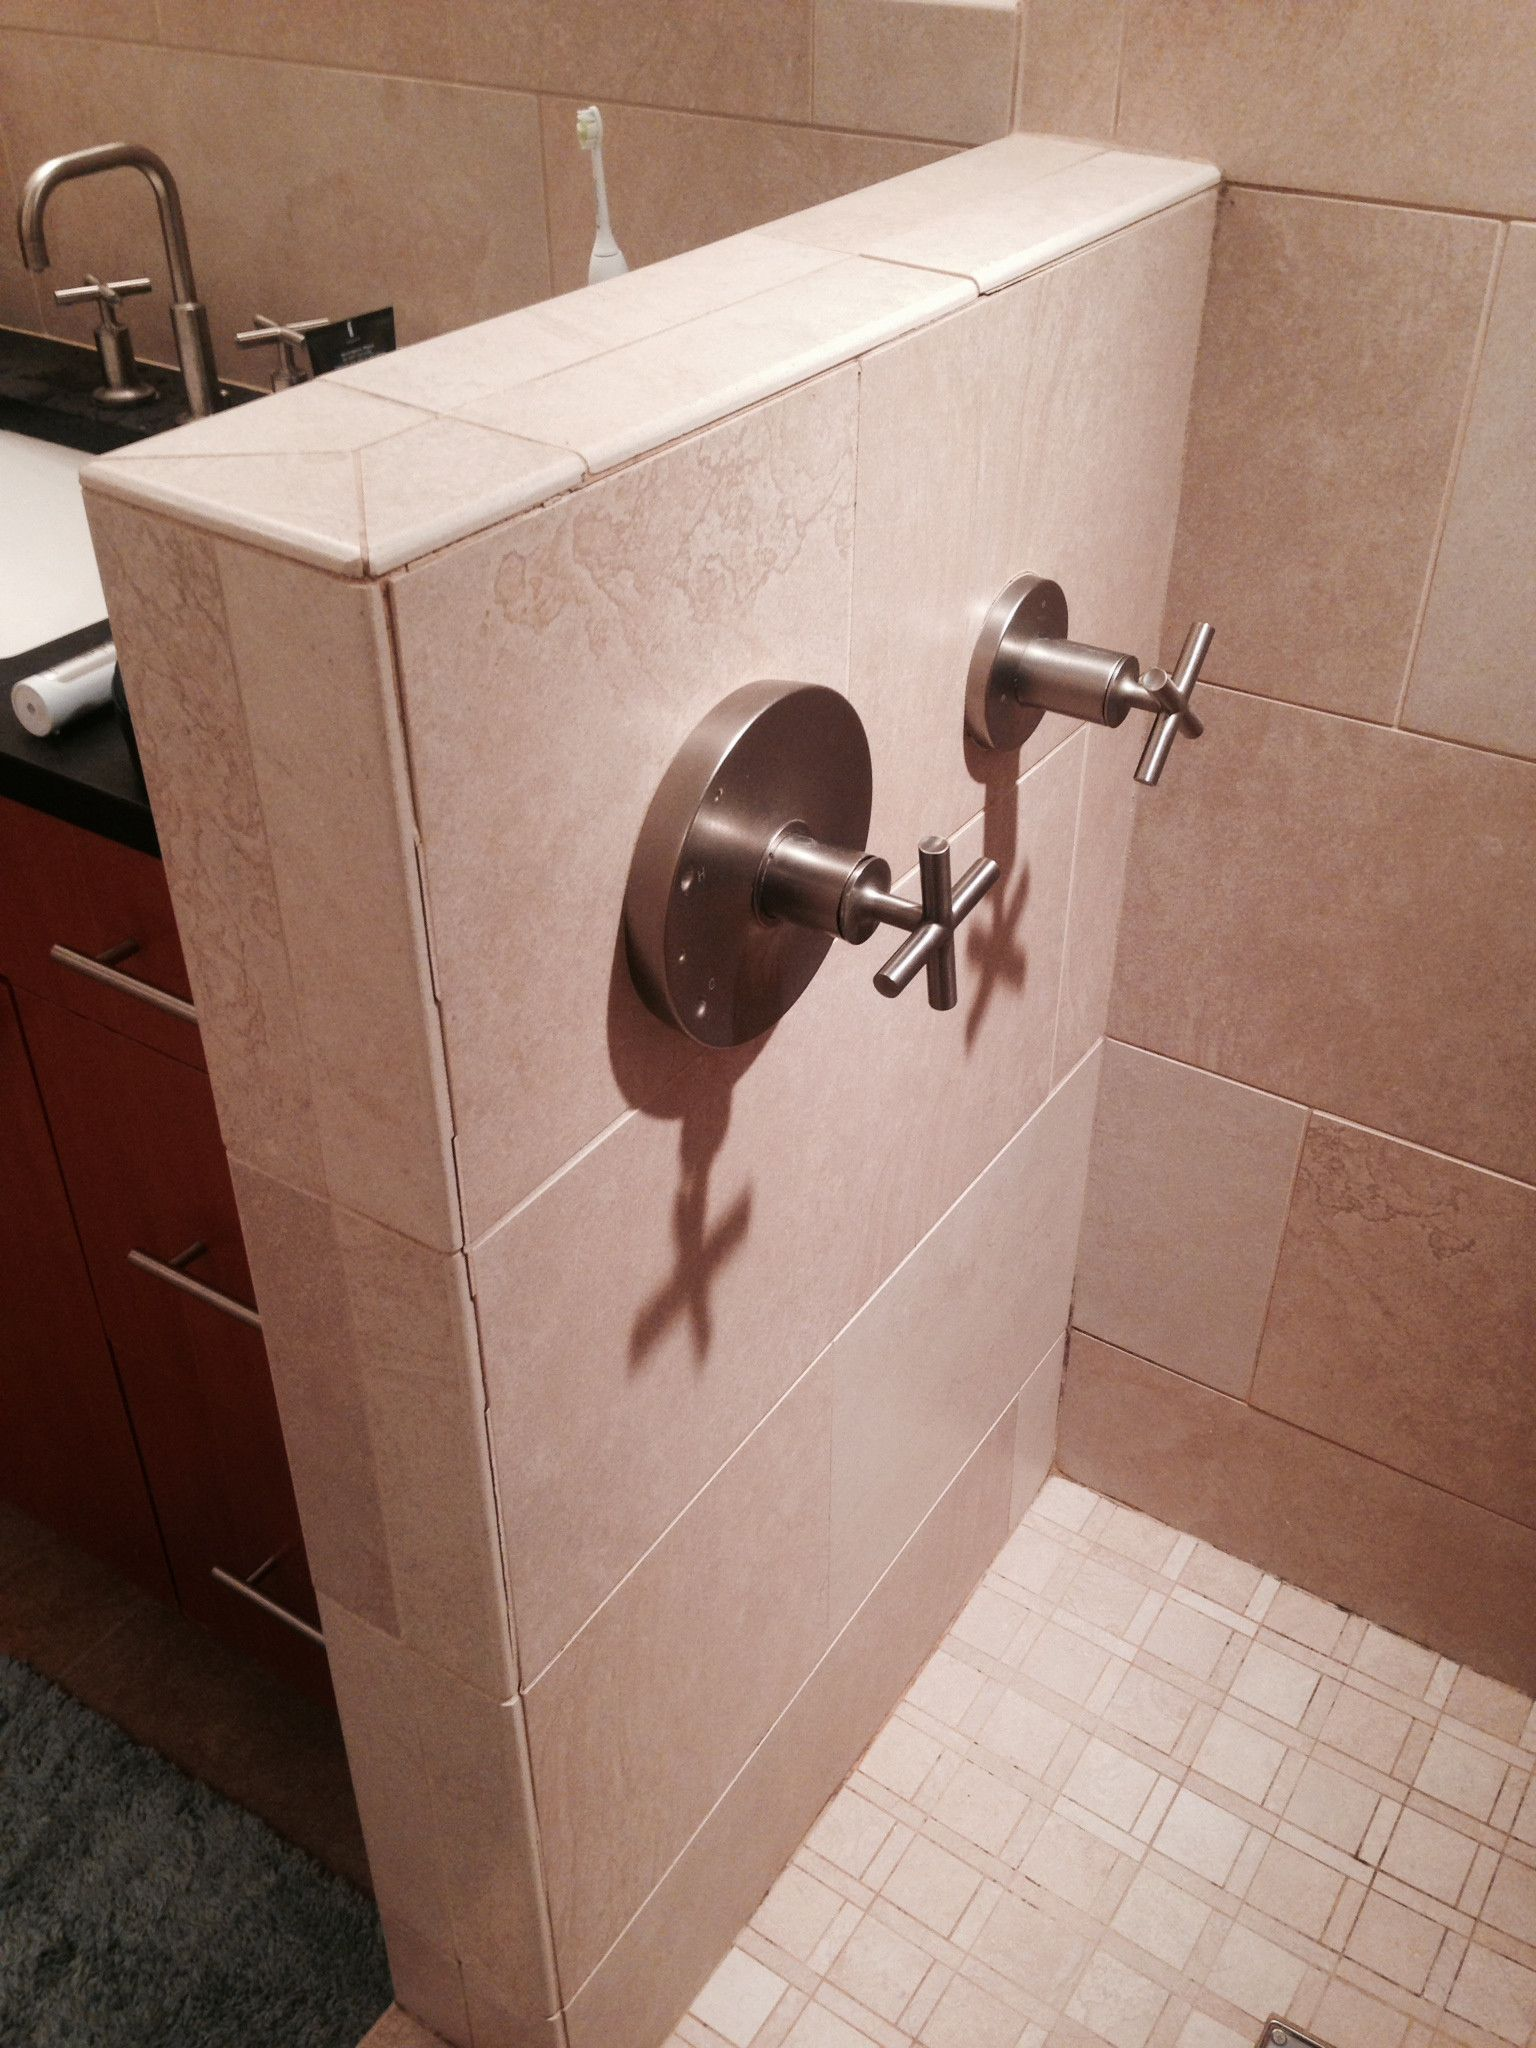 How To Repair Broken Grout In Shower Tile Home Improvement Stack Exchange With Images Shower Tile Small Bathroom Decor Small Bathroom Sinks